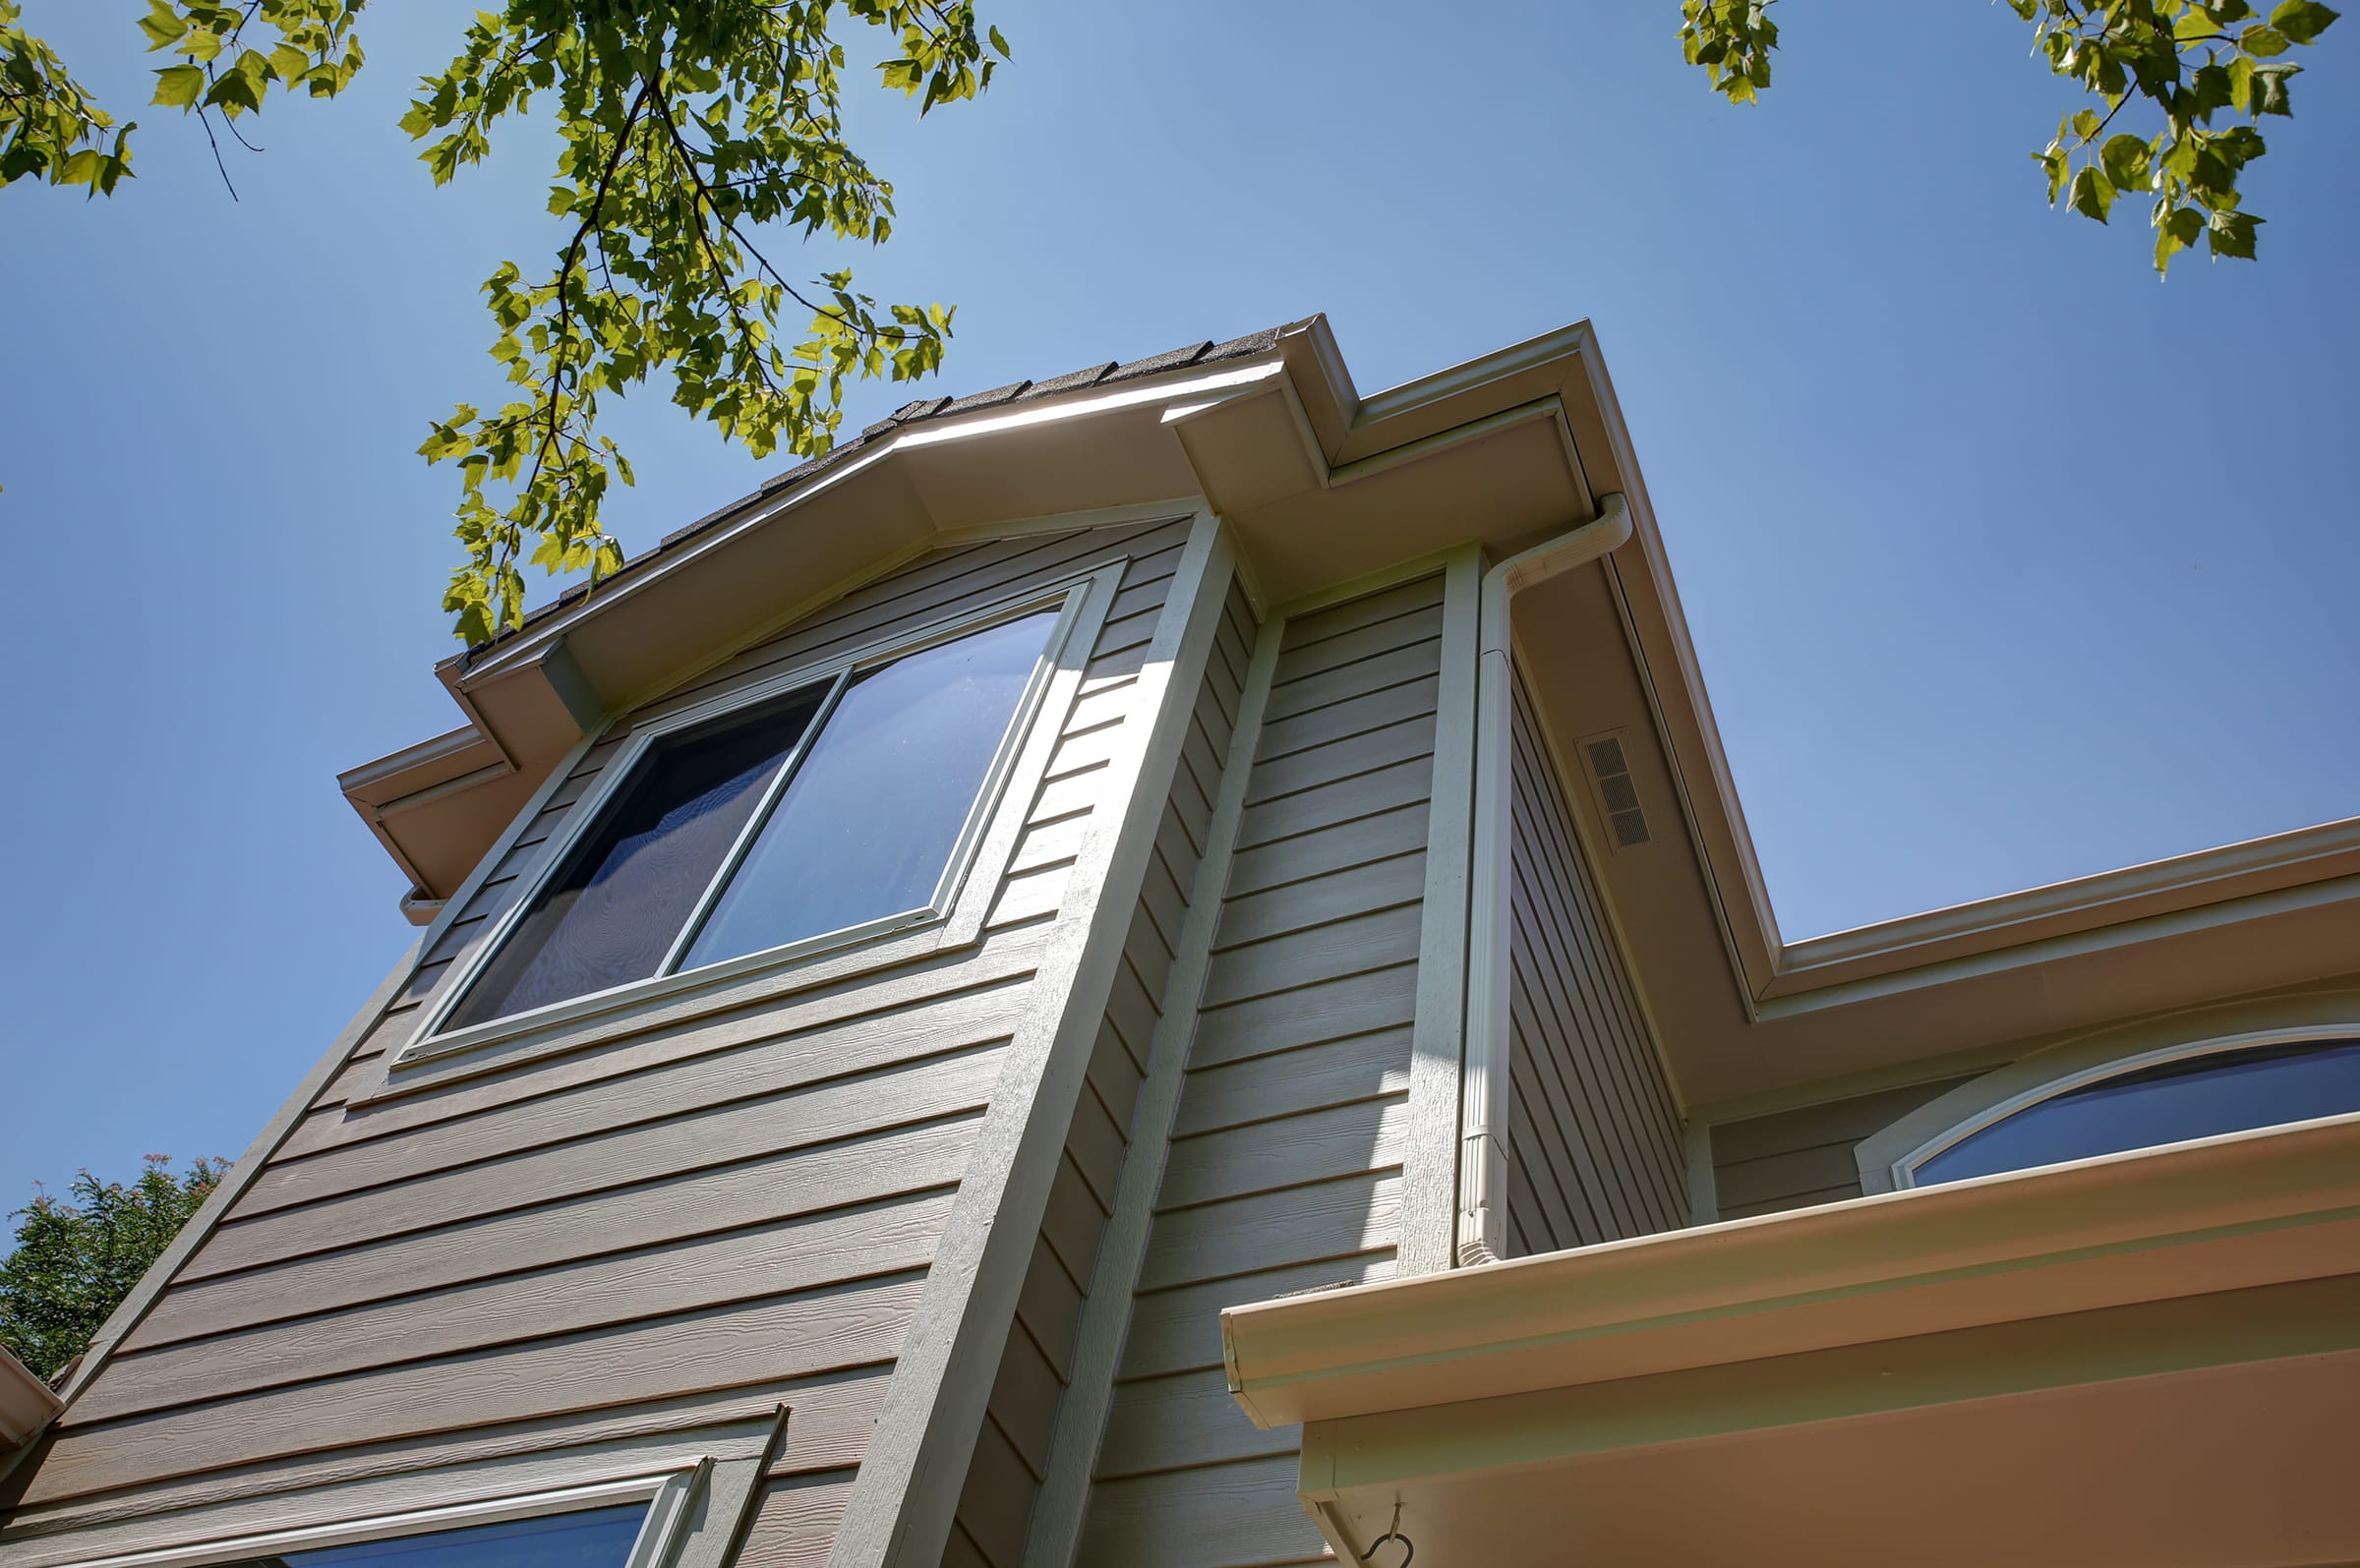 Looking for a Siding Contractor?